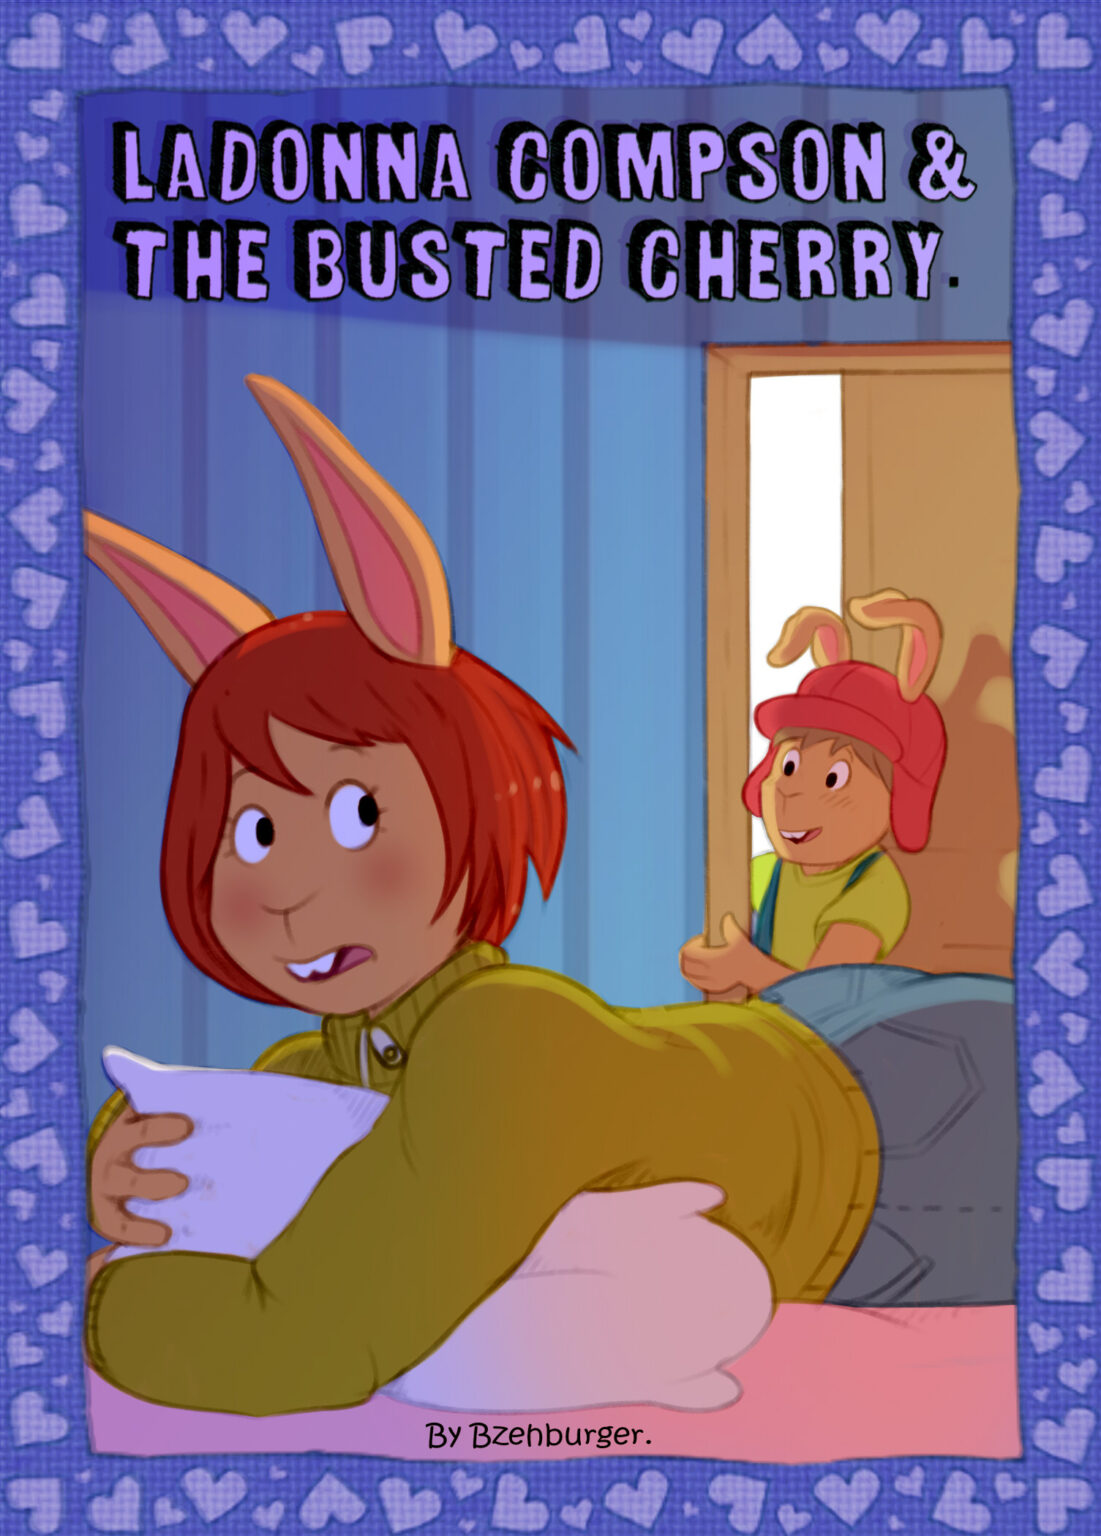 LADONNA COMPSON and the Busted Cherry